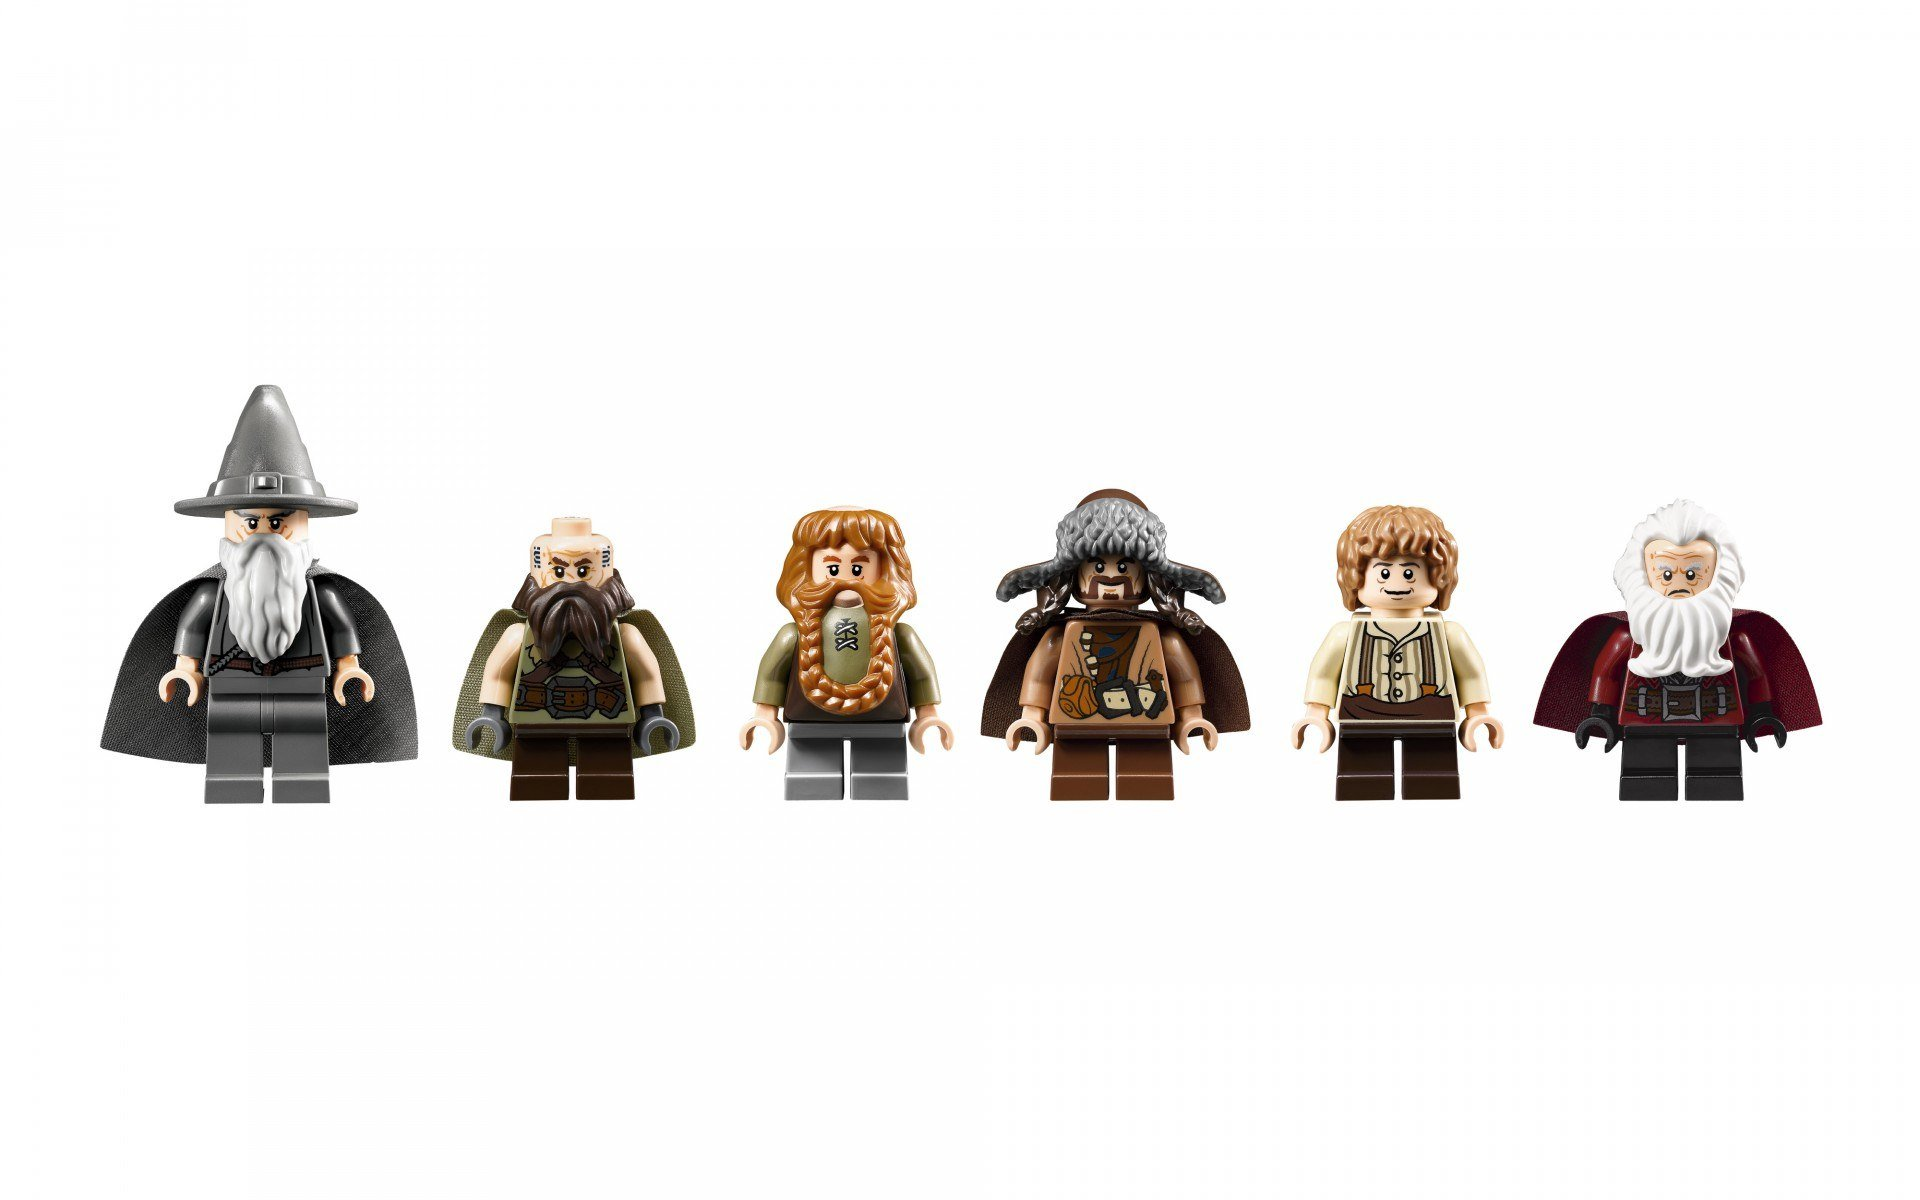 LEGO The Hobbit выйдет весной 2014 - Изображение 1